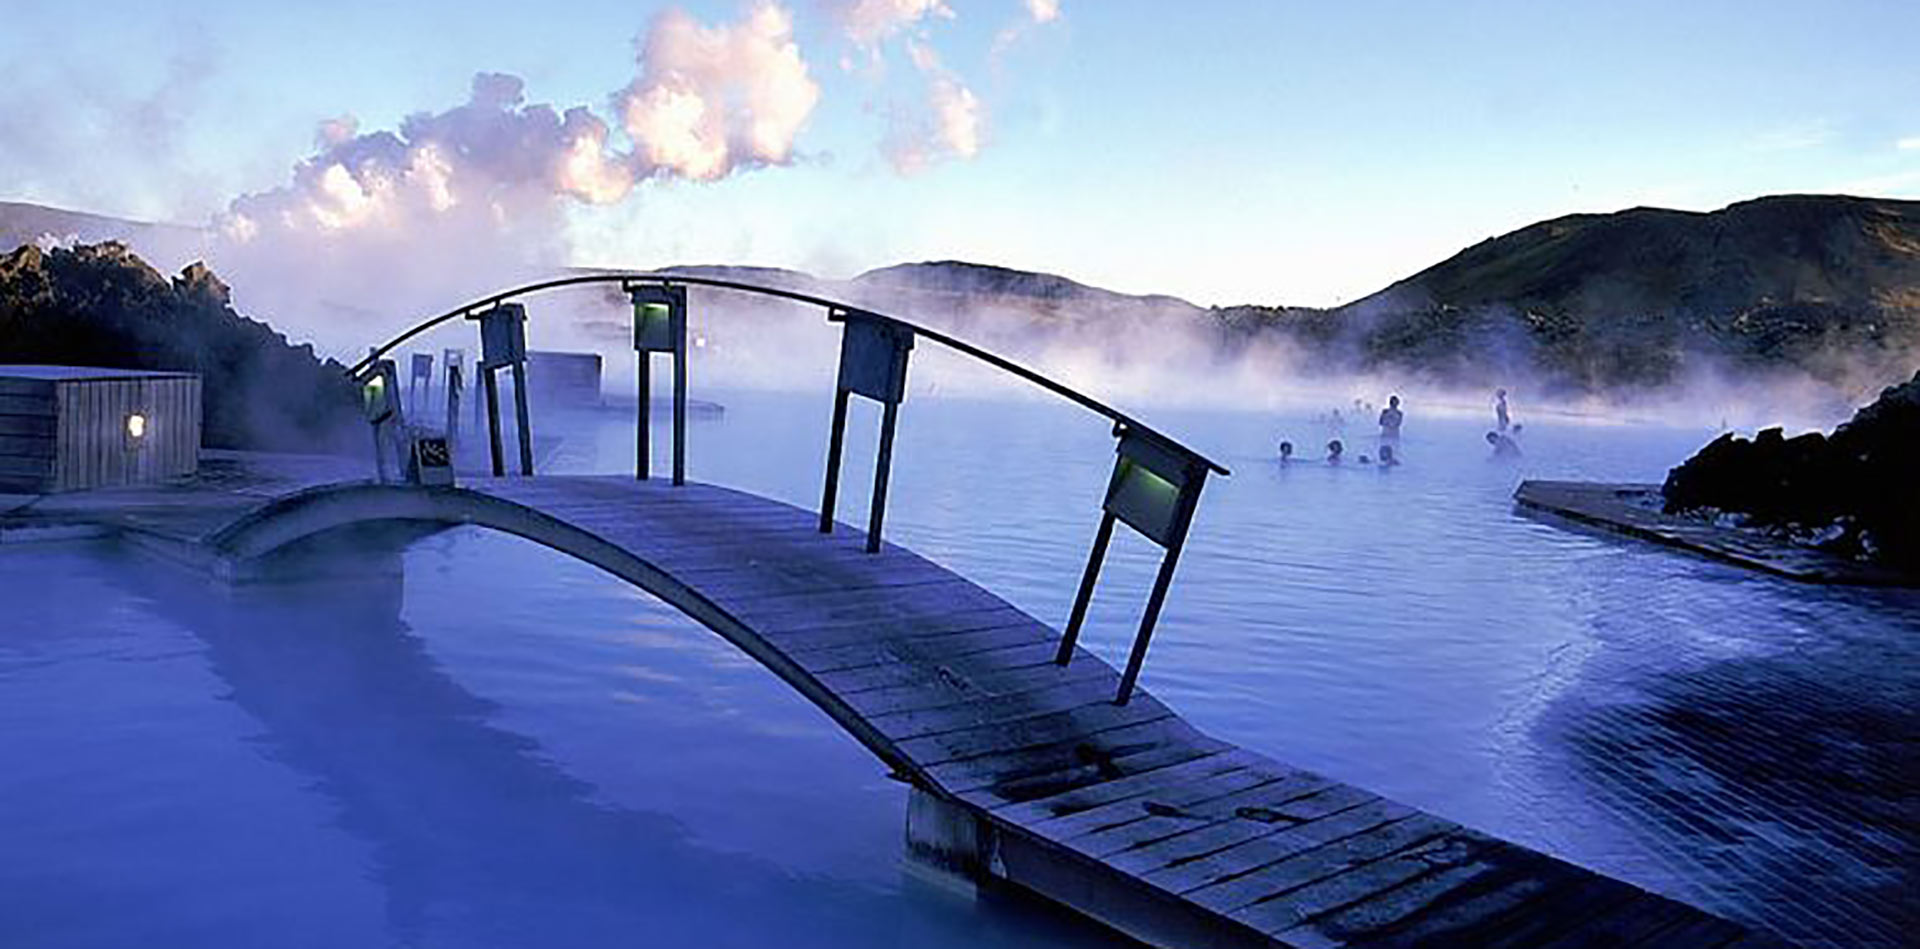 Europe Iceland Blue Lagoon wooden bridge scenic geothermal spa relaxing - luxury vacation destinations